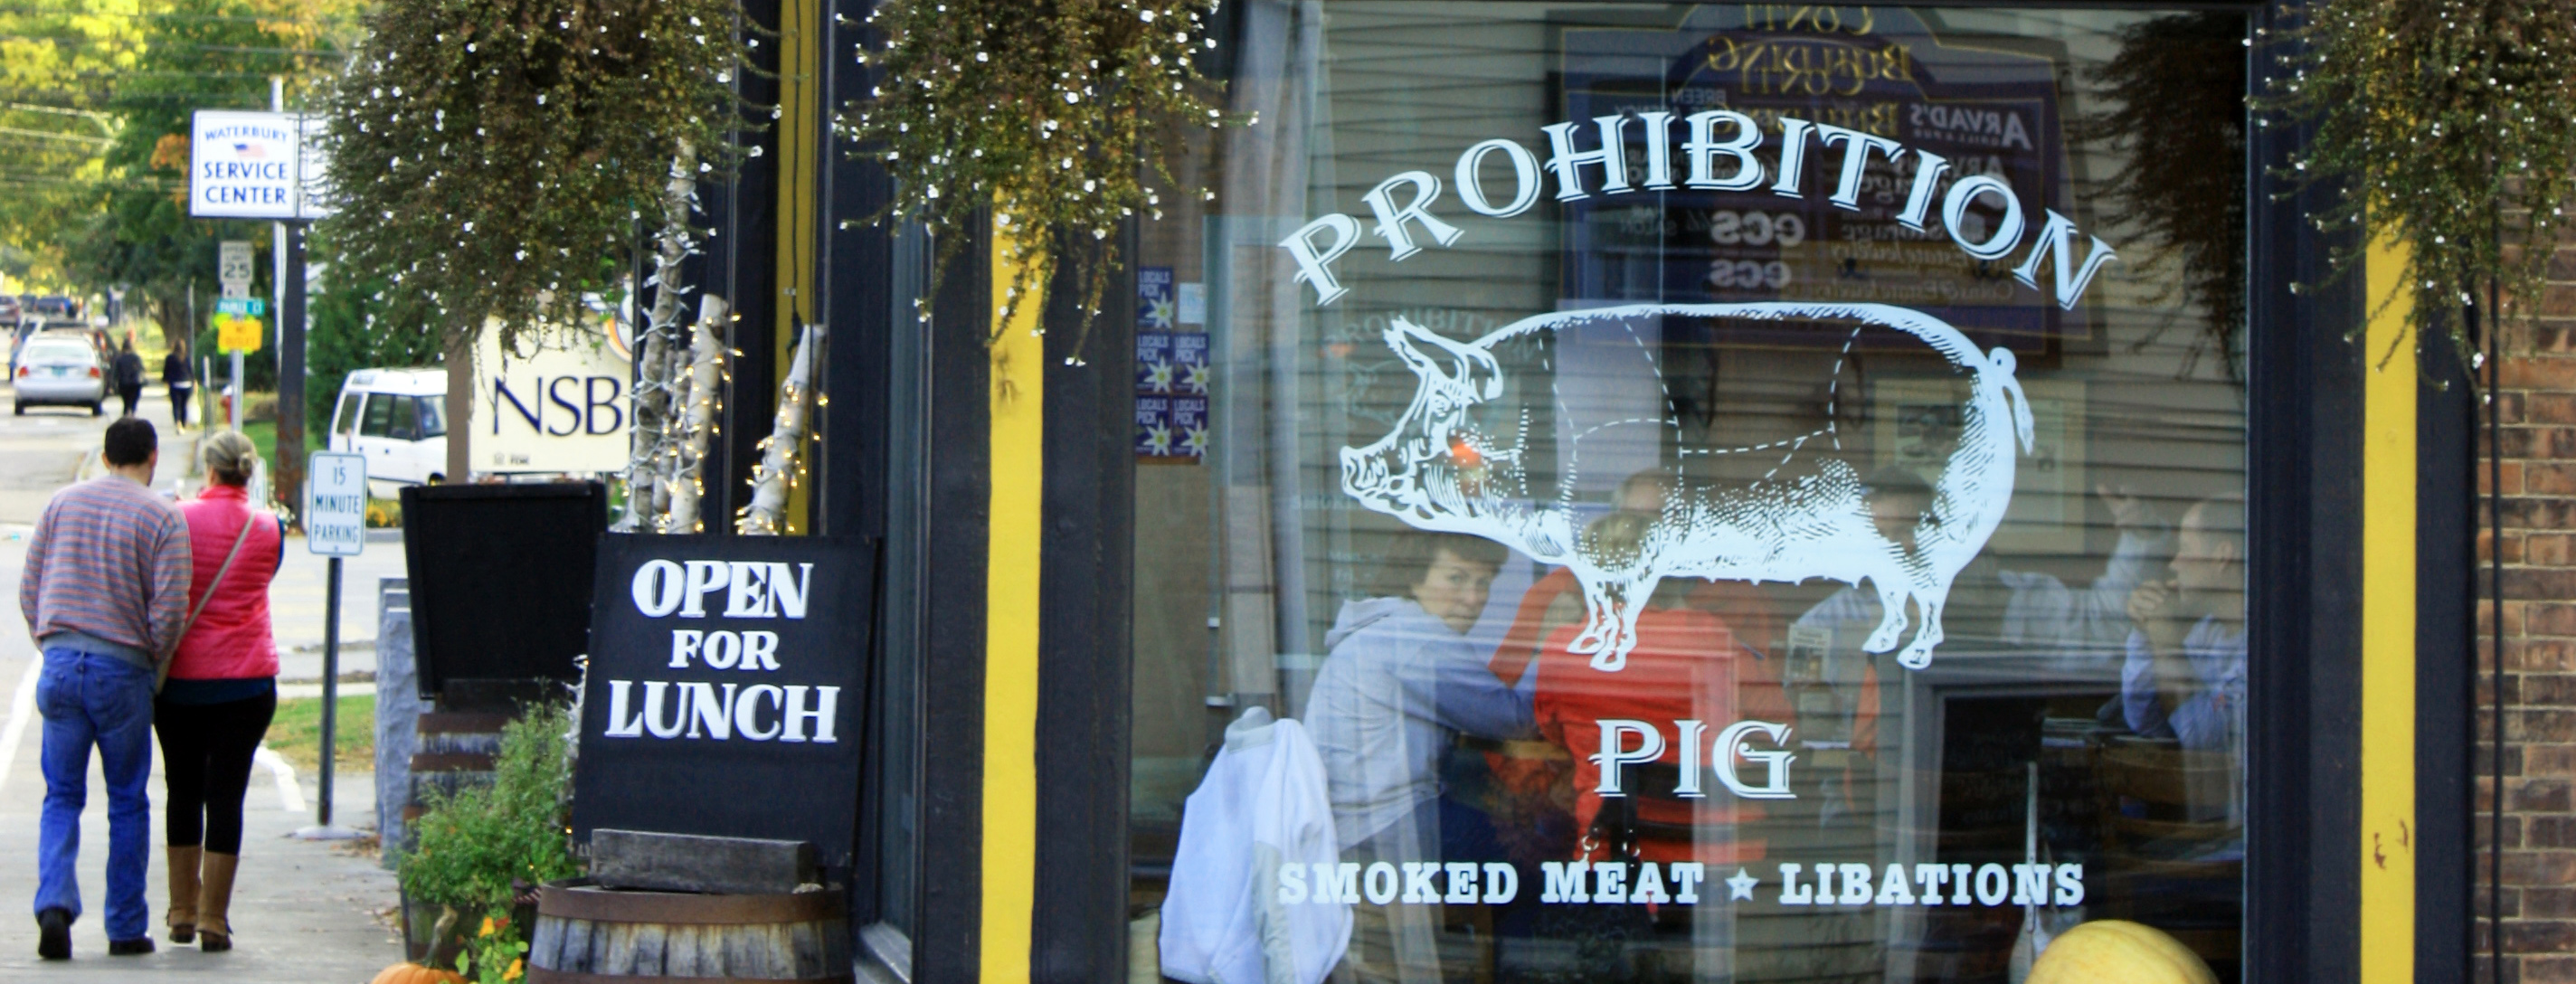 Prohibition Pig Waterbury Vermont Travel Like A Local